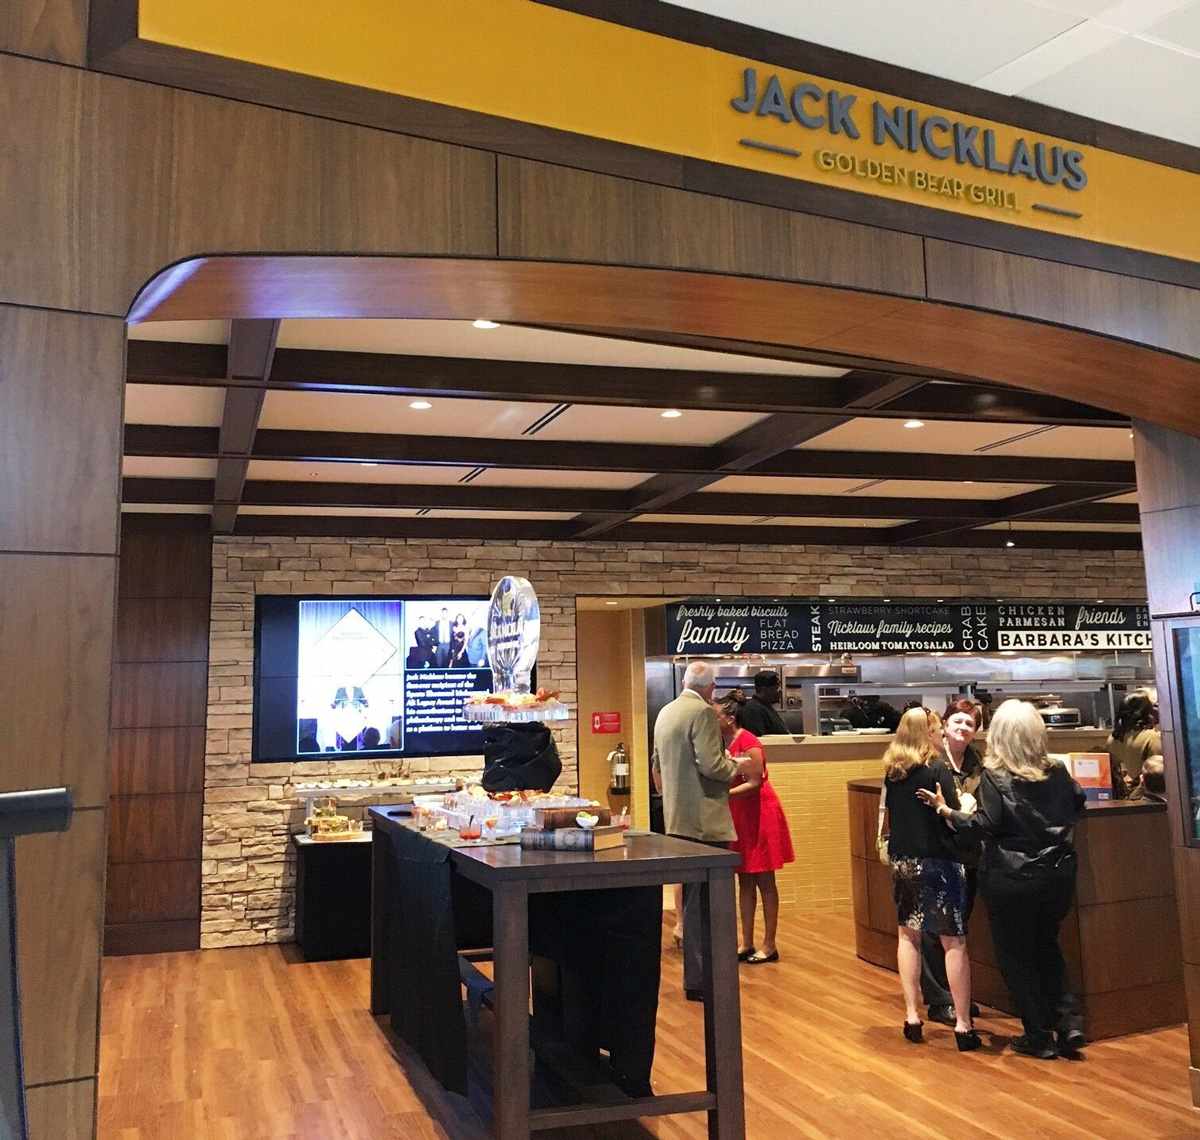 Jack Nicklaus Golden Bear Grill at Charleston International Airport